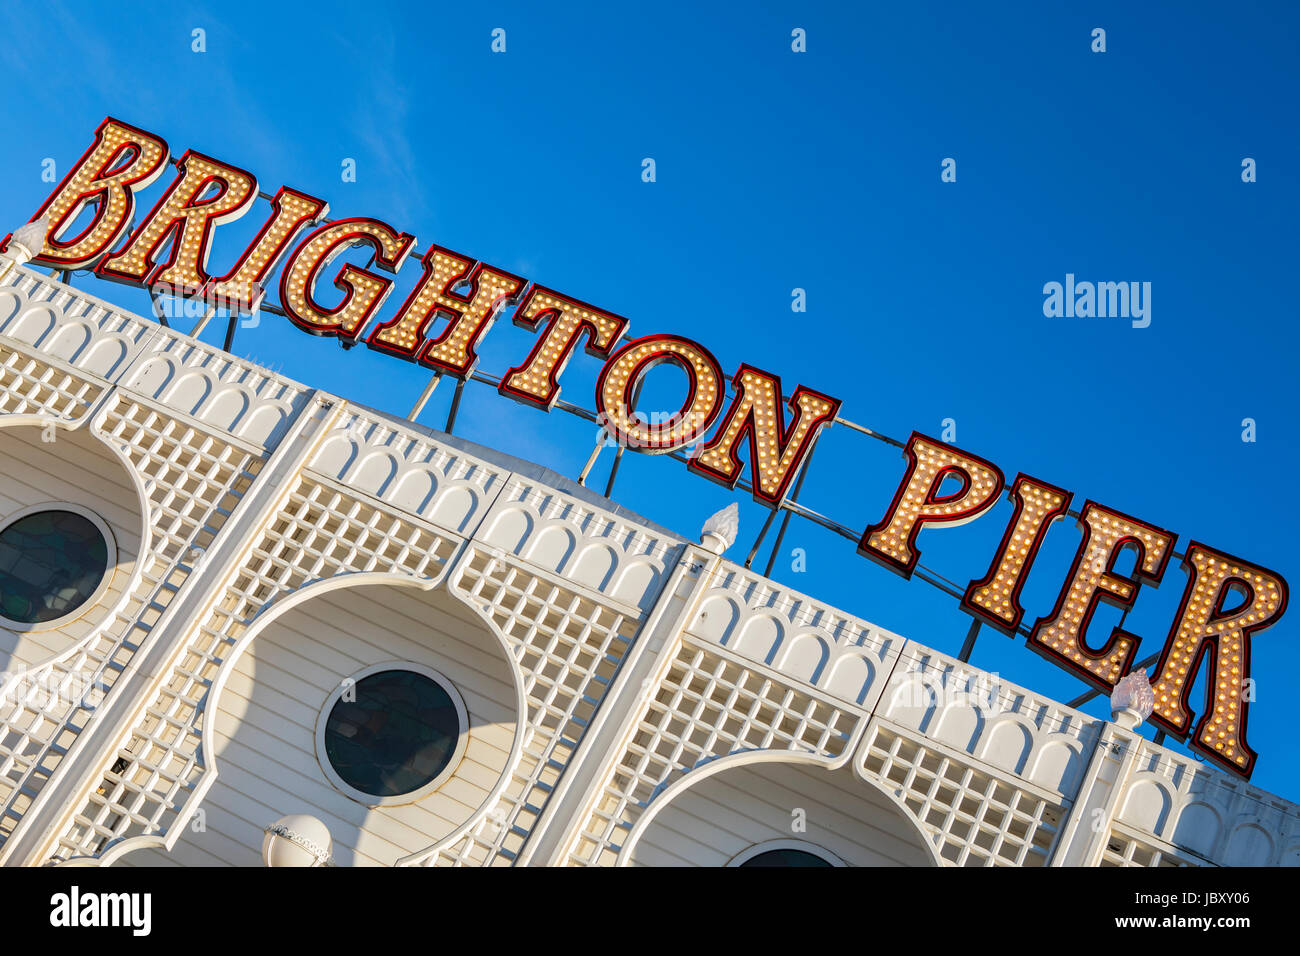 The lit-up neon sign on the historic Brighton Pier in East Sussx, UK. - Stock Image